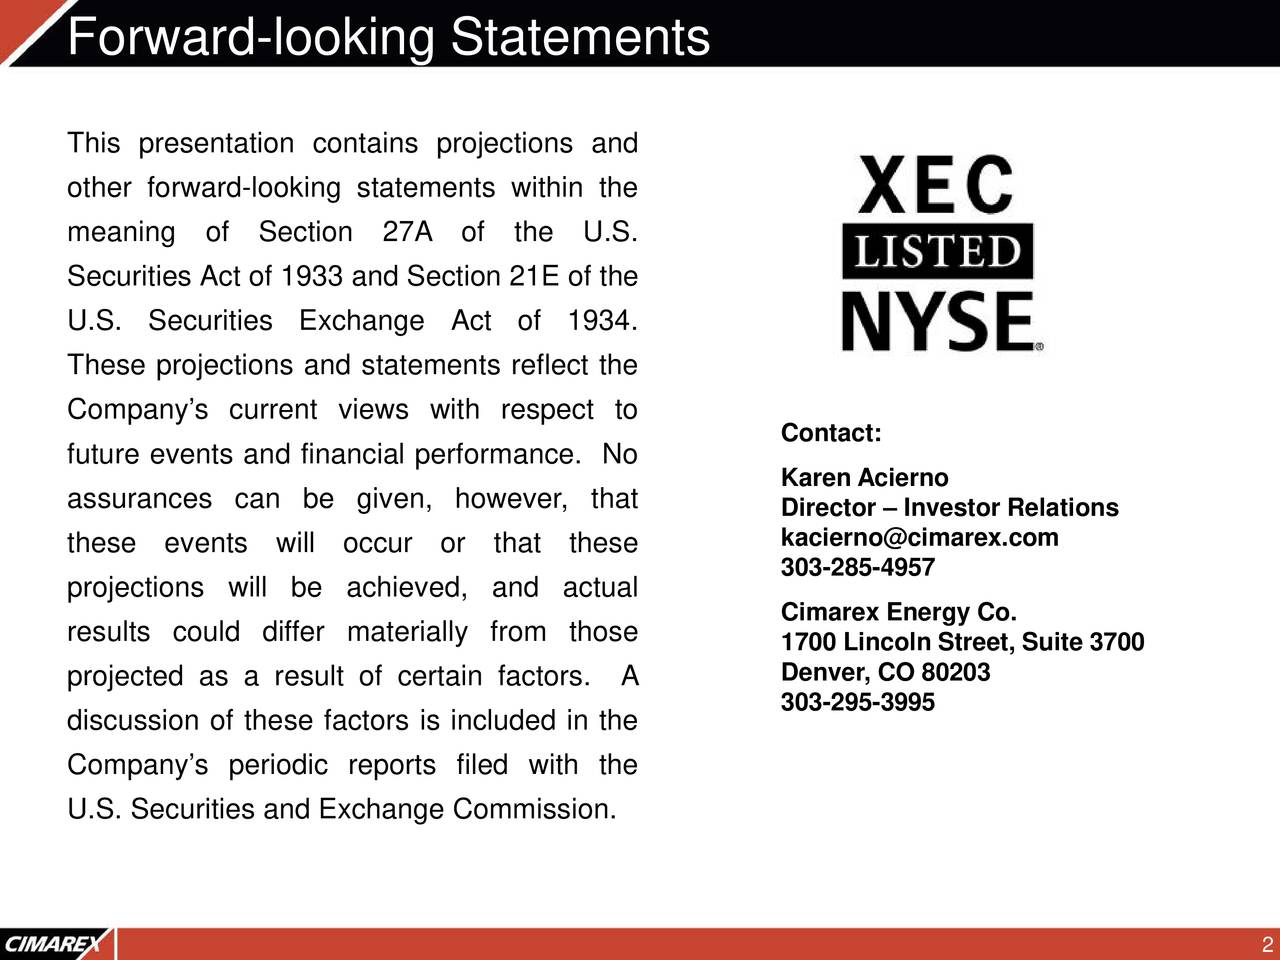 This presentation contains projections and other forward-looking statements within the meaning of Section 27A of the U.S. Securities Act of 1933 and Section 21E of the U.S. Securities Exchange Act of 1934. These projections and statements reflect the Company's current views with respect to Contact: future events and financial performance. No Karen Acierno assurances can be given, however, that Director – Investor Relations these events will occur or that these kacierno@cimarex.com 303-285-4957 projections will be achieved, and actual results could differ materially from those Cimarex Energy Co. 1700 Lincoln Street, Suite3700 projected as a result of certain factors. A Denver, CO 80203 303-295-3995 discussion of these factors is included in the Company's periodic reports filed with the U.S. Securities and Exchange Commission.